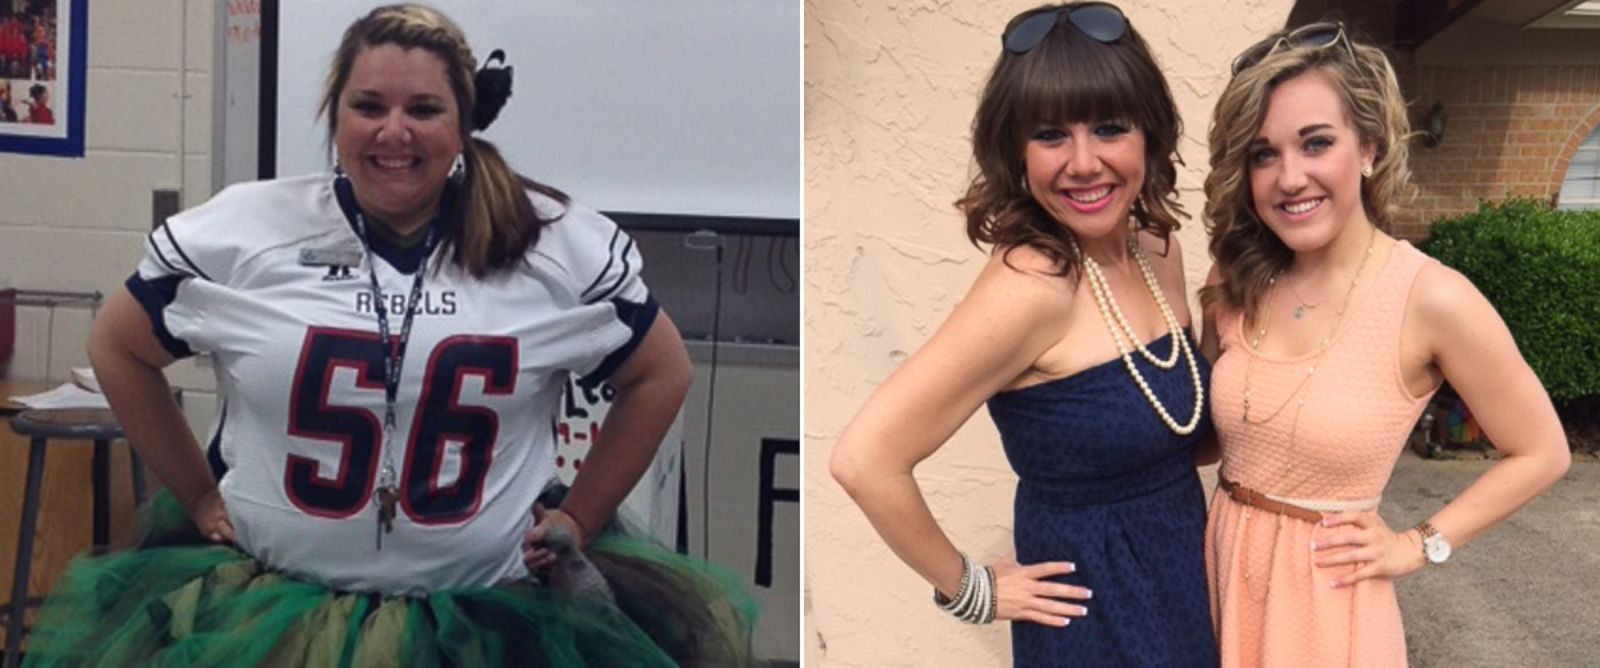 PHOTO: Thanks to Zumba, high-school teacher Roni Traver lost 100 pounds.